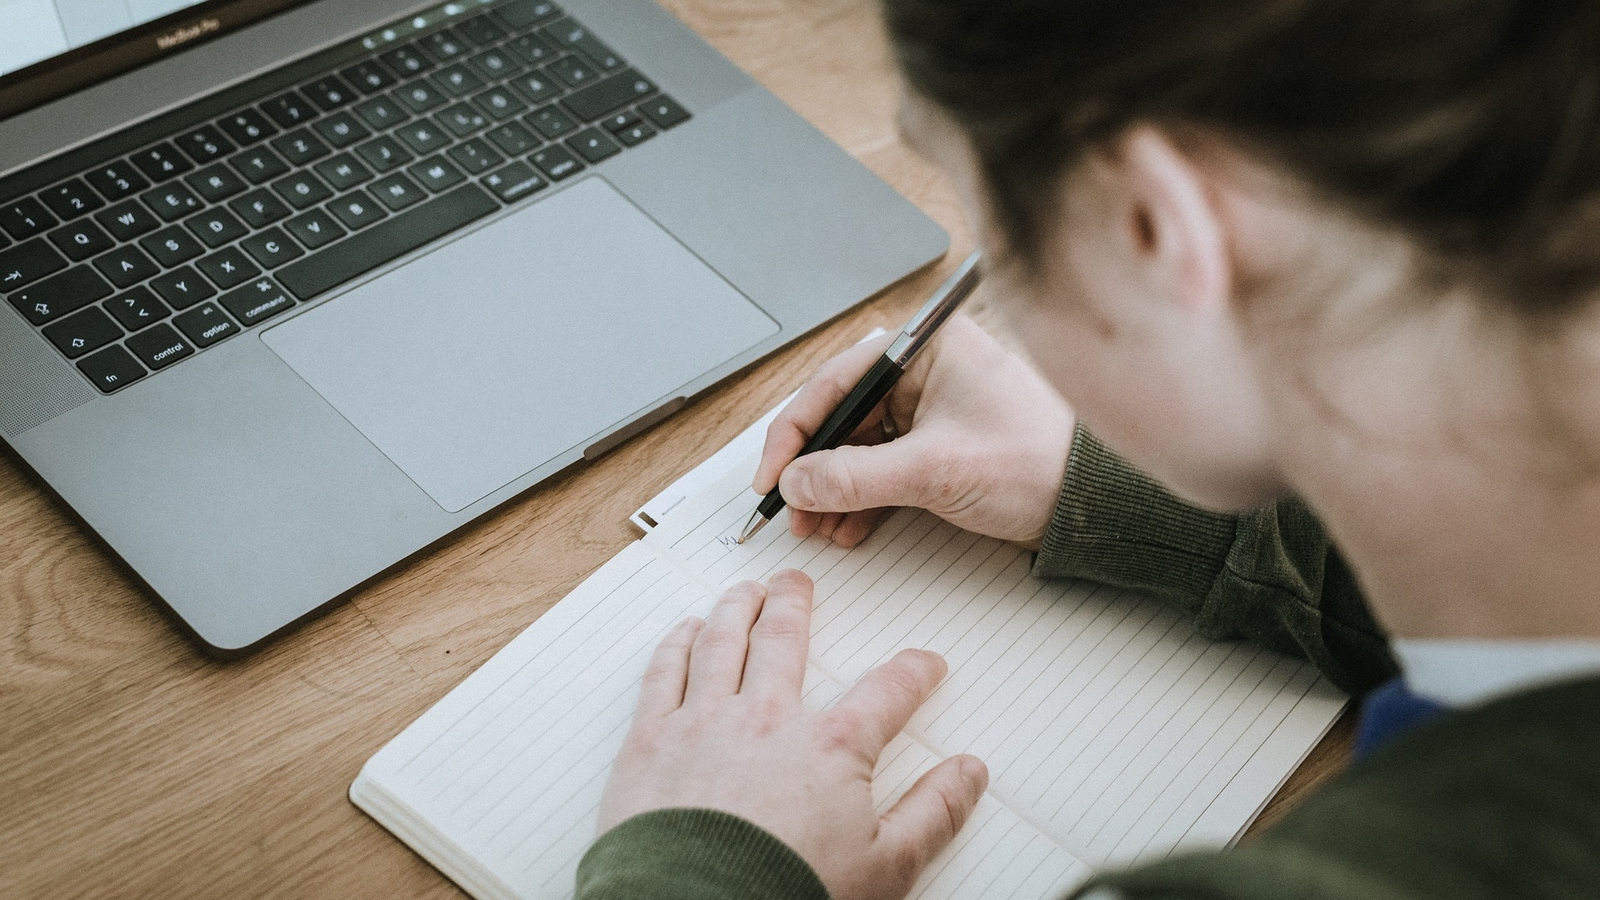 person writing in notebook with laptop open